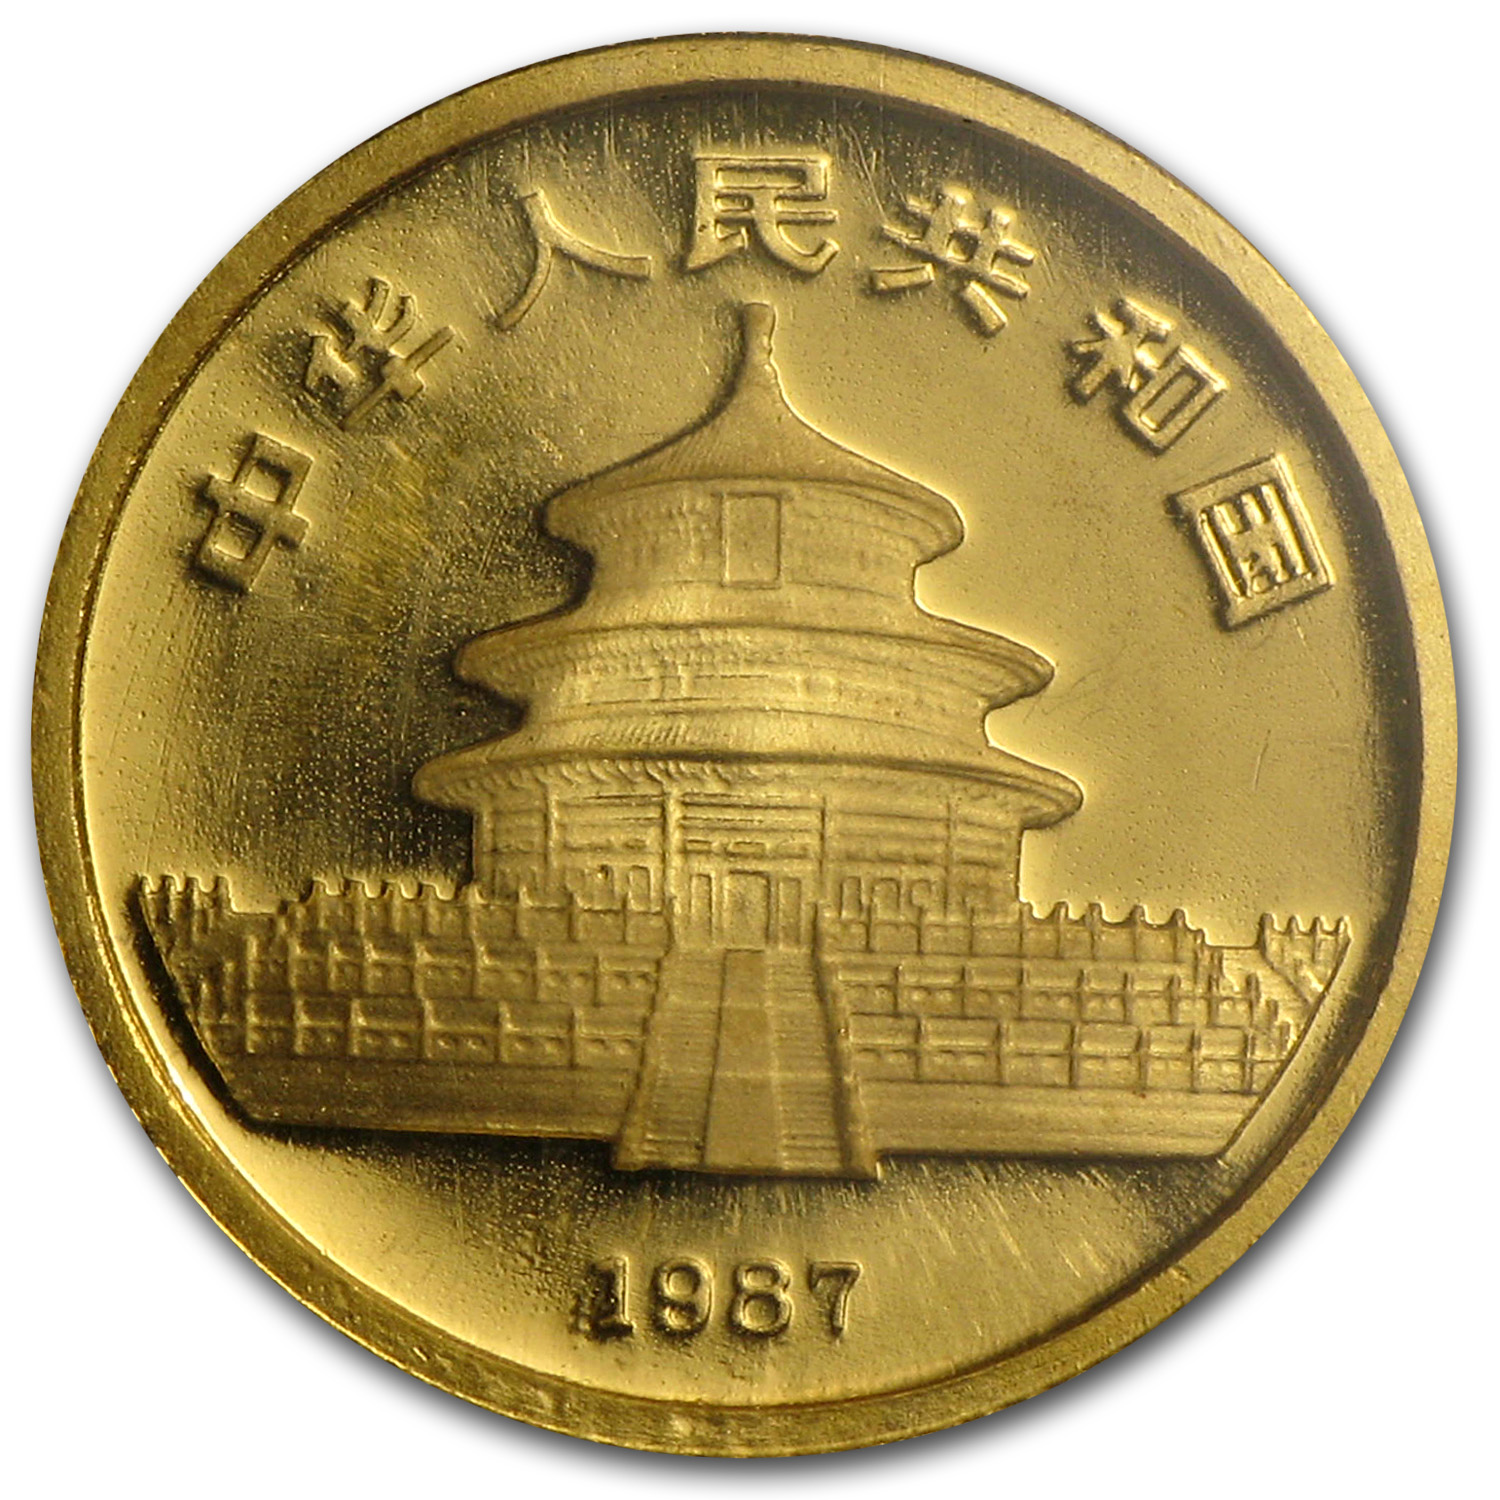 1987-S China 1/20 oz Gold Panda BU (Sealed)